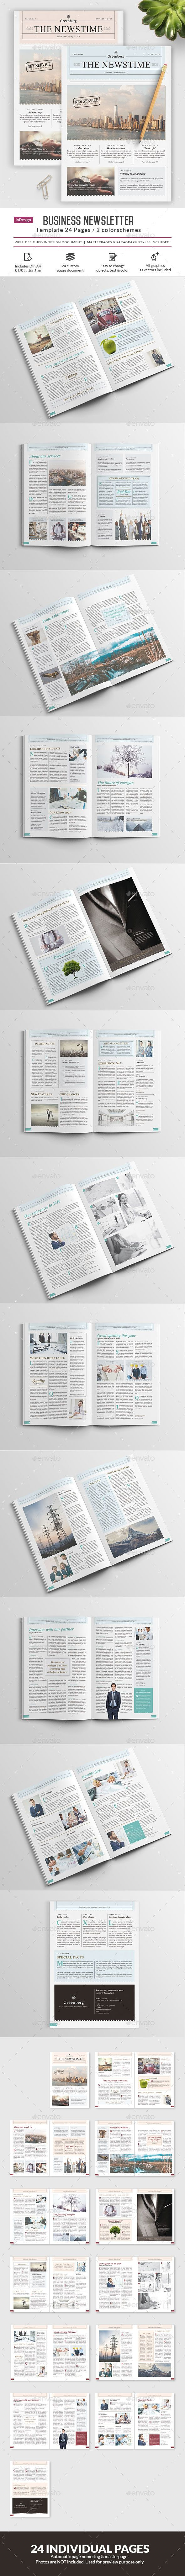 Business Newsletter - 24 pages - Template InDesign INDD